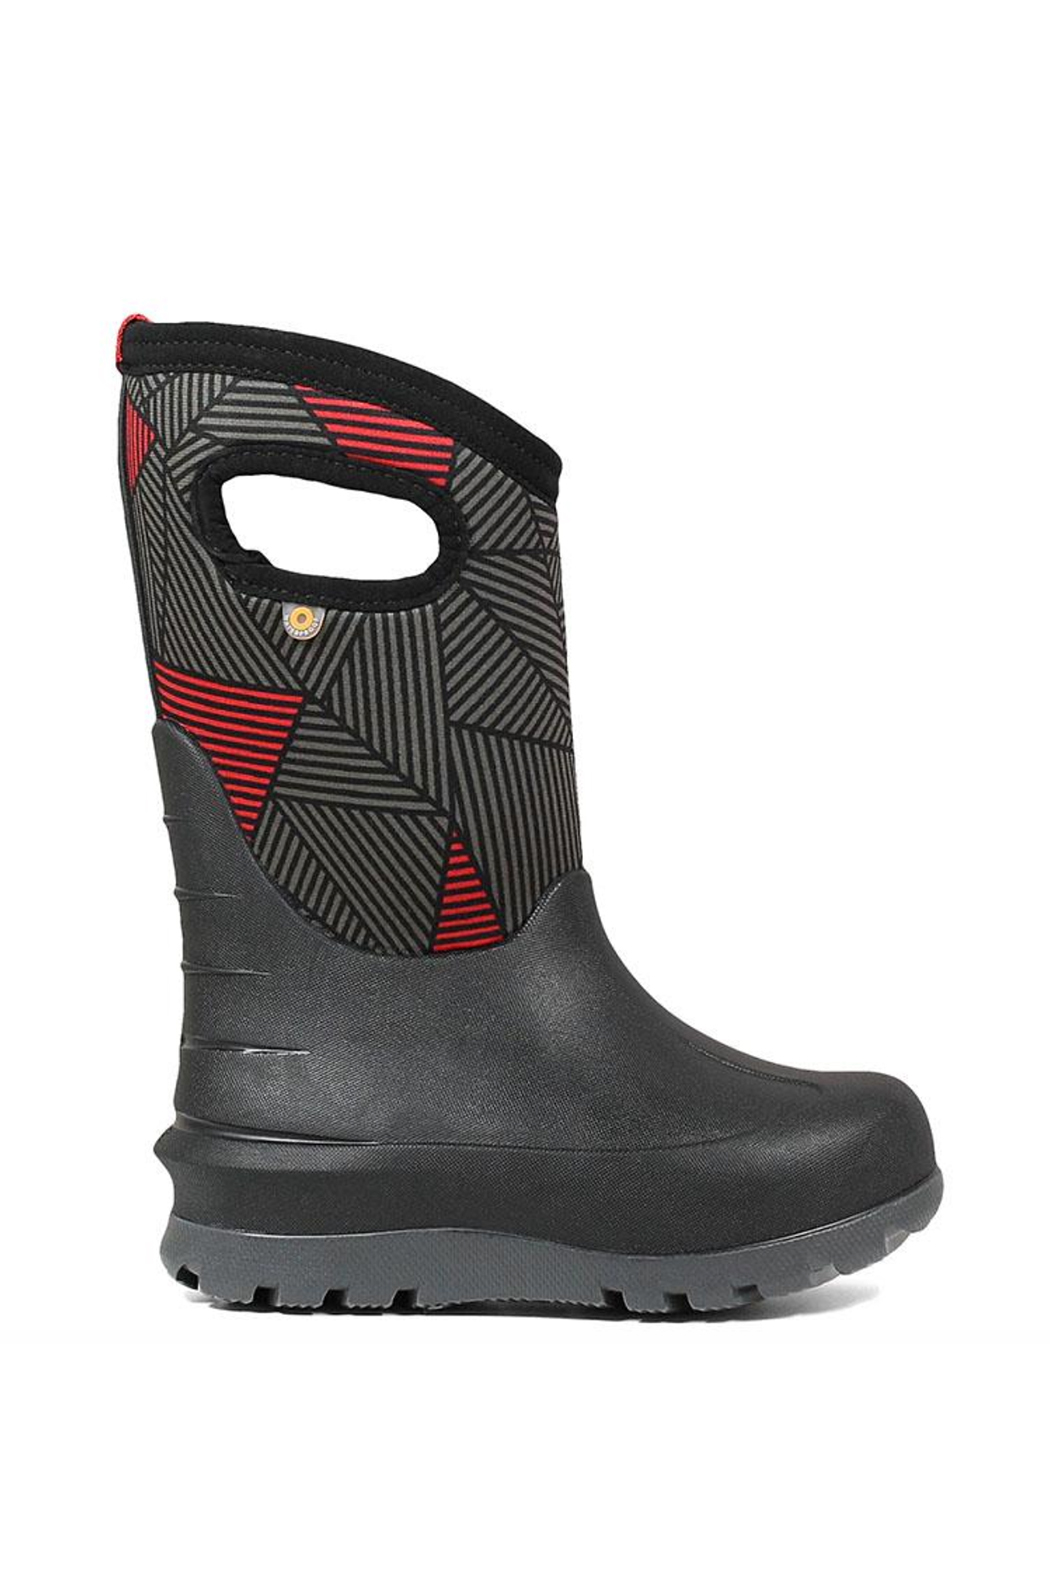 BOGS Neo-Classic Big Geo Kids' Insulated  Boots - Main Image